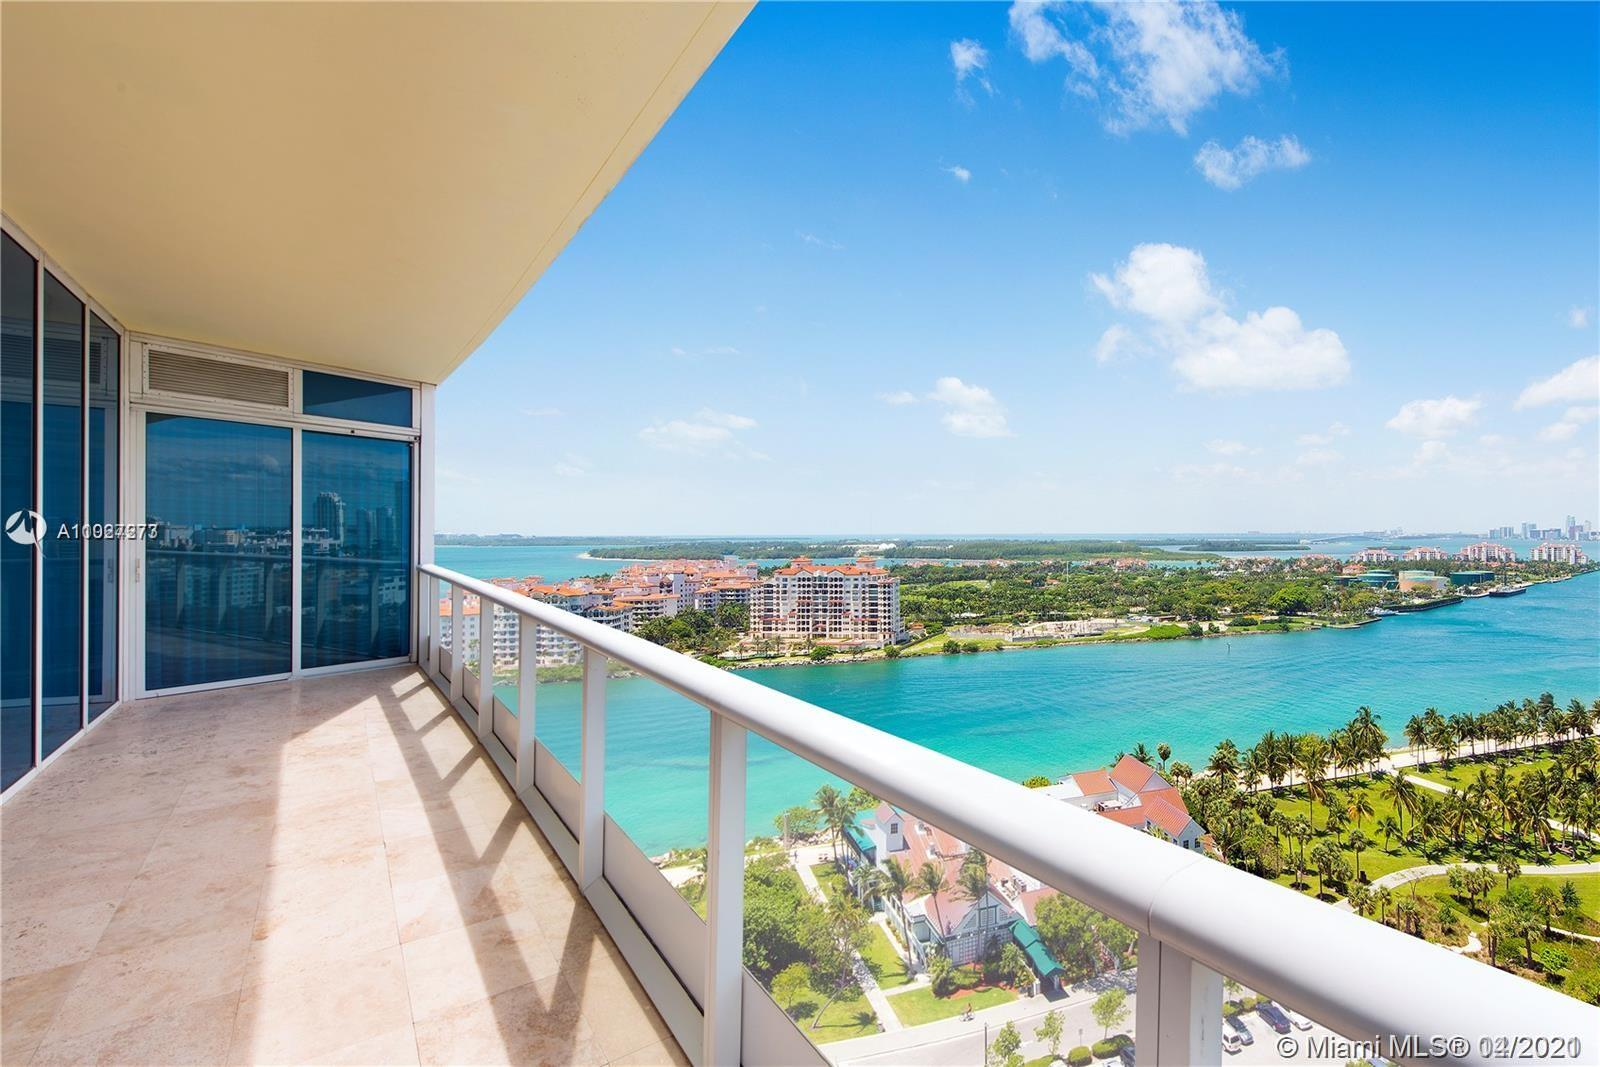 Experience sweeping views of the Ocean, Fisher Island and Downtown Miami from this 2 bedroom residence at The Continuum South Beach. Expansive balcony, open kitchen with Subzero and Miele appliances and a split floorplan with a private foyer. Continuum amenities include 12 acres of playground including pools, 3 tennis courts, great restaurant, beach service and a 10,000 square foot fitness. Gated community affording resort living at its finest.